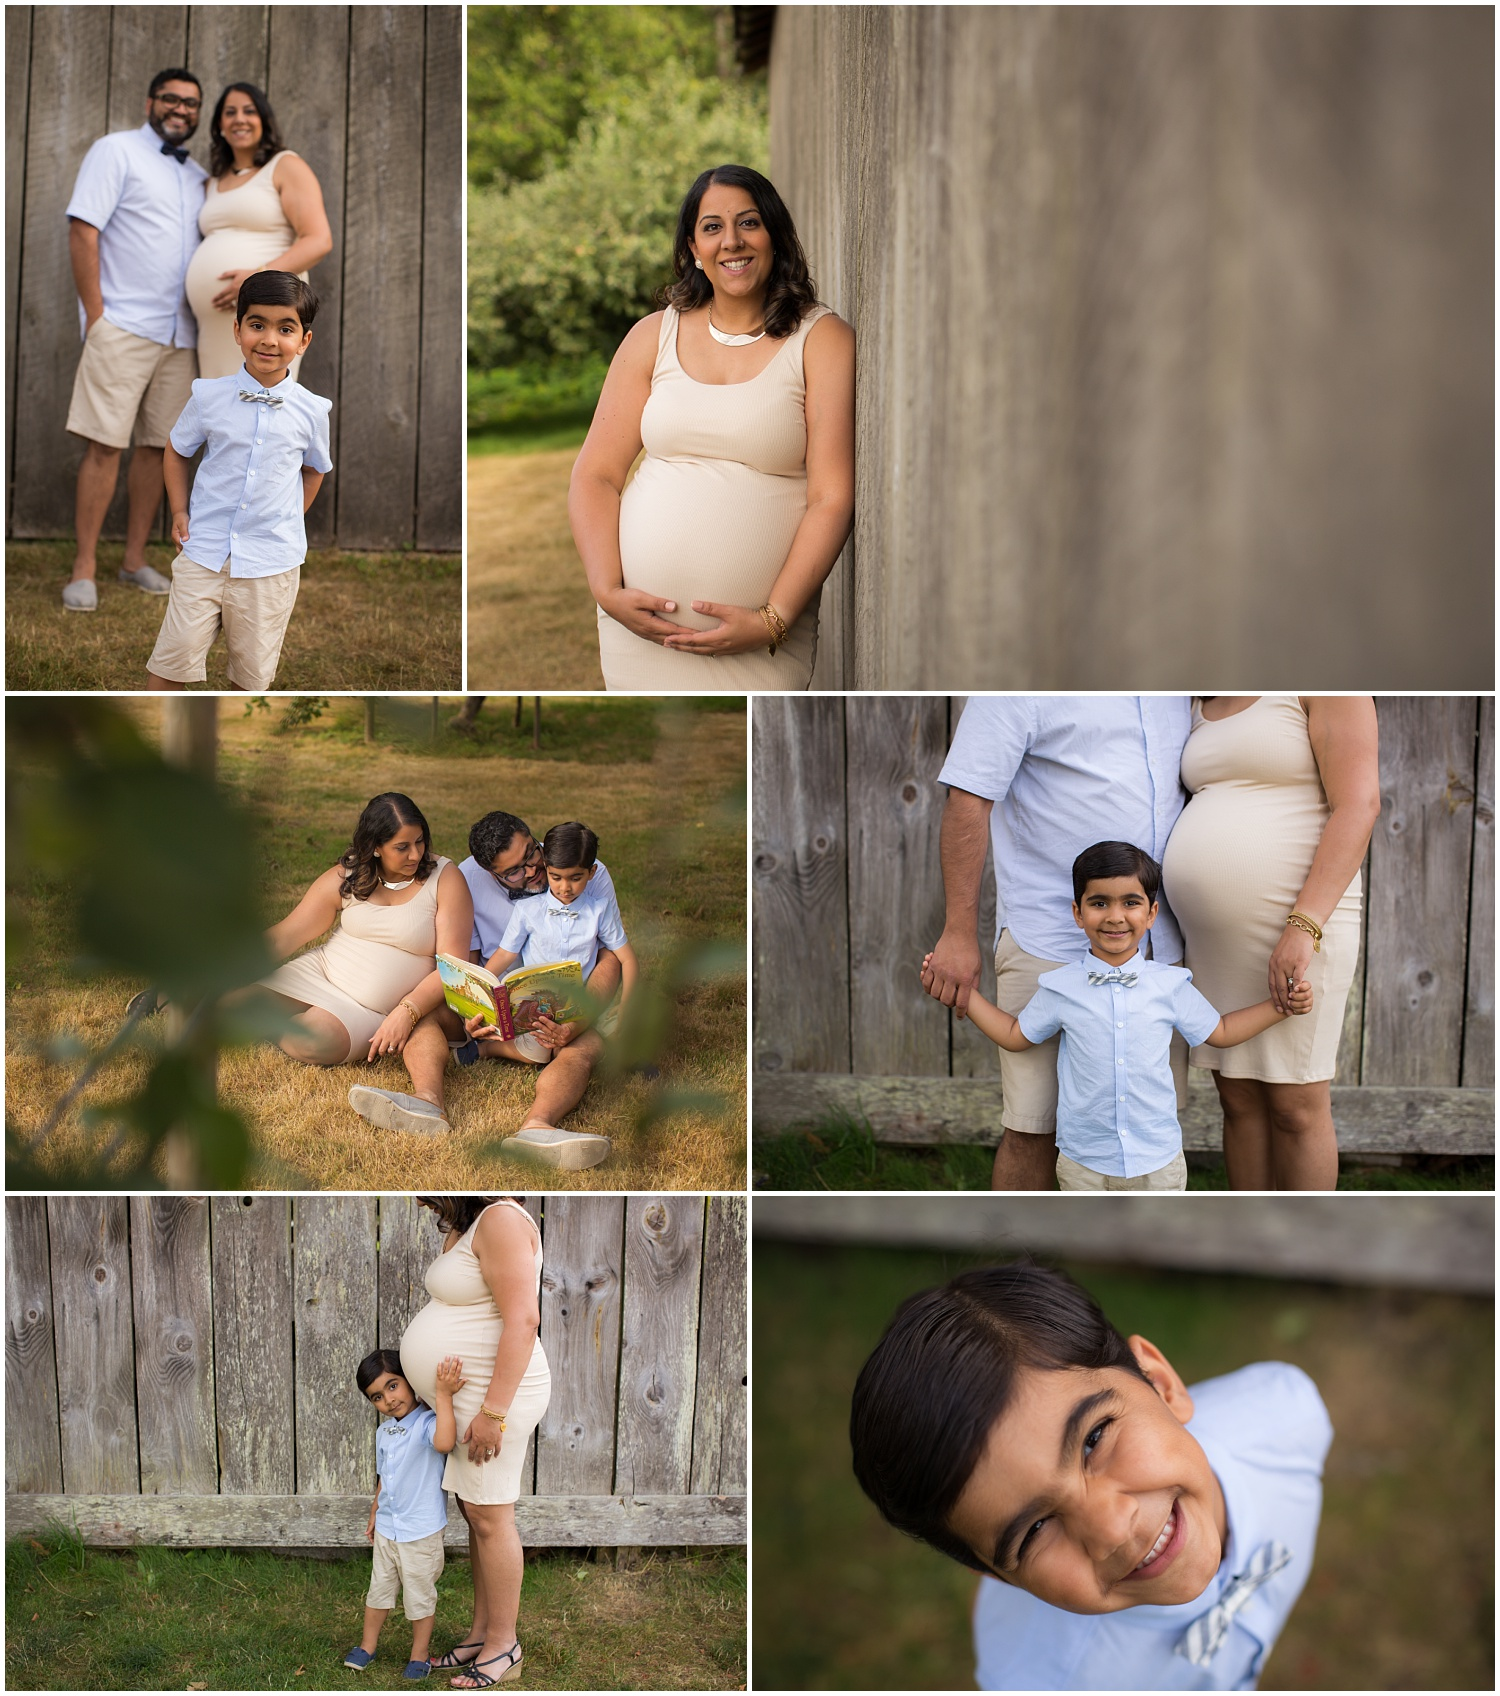 Amazing Day Photography - Stewart Farm House Maternity Session - Langley Maternity Photography (3).jpg